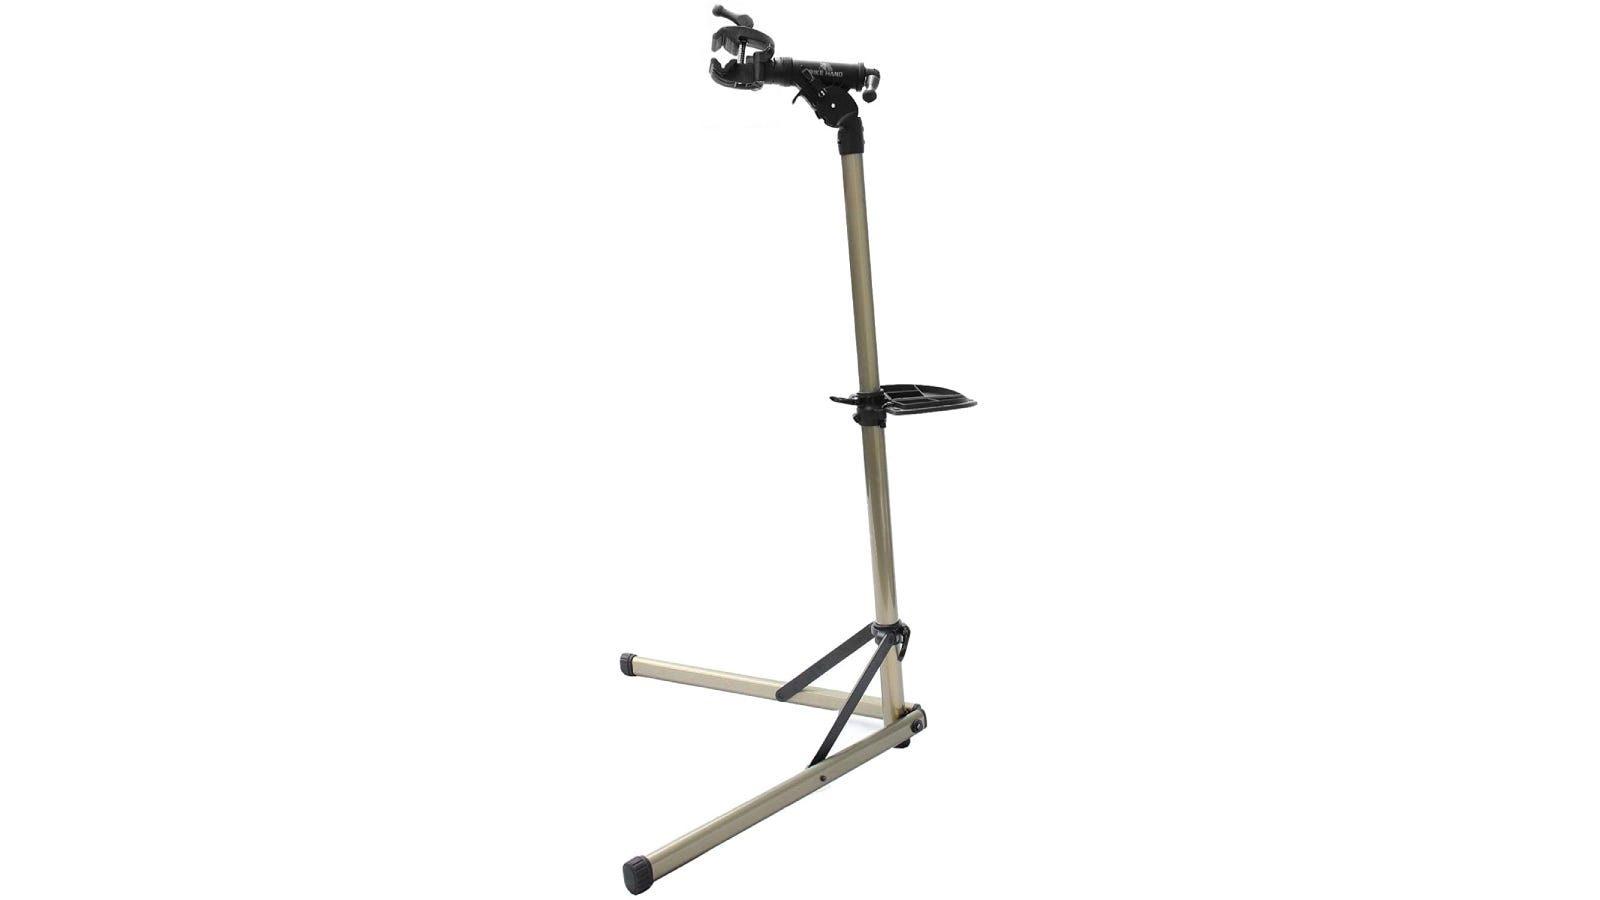 A gold bike stand with two supporting legs.